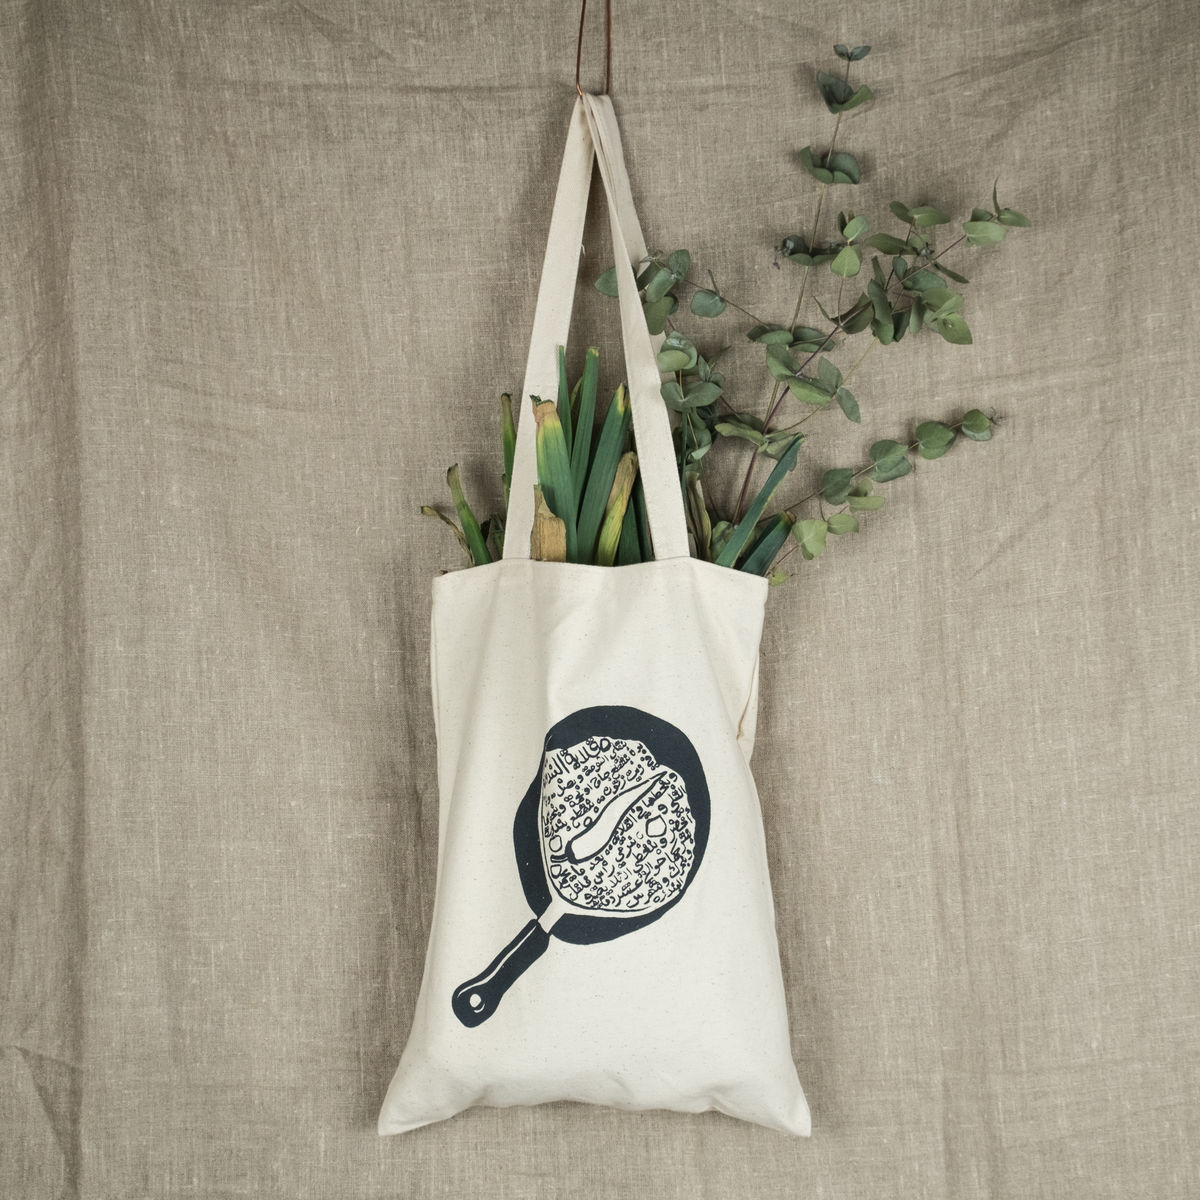 El Beir Arts and Seeds tote bag - popular Palestinian dishes - Pan-fried tomatoes  - product images  of